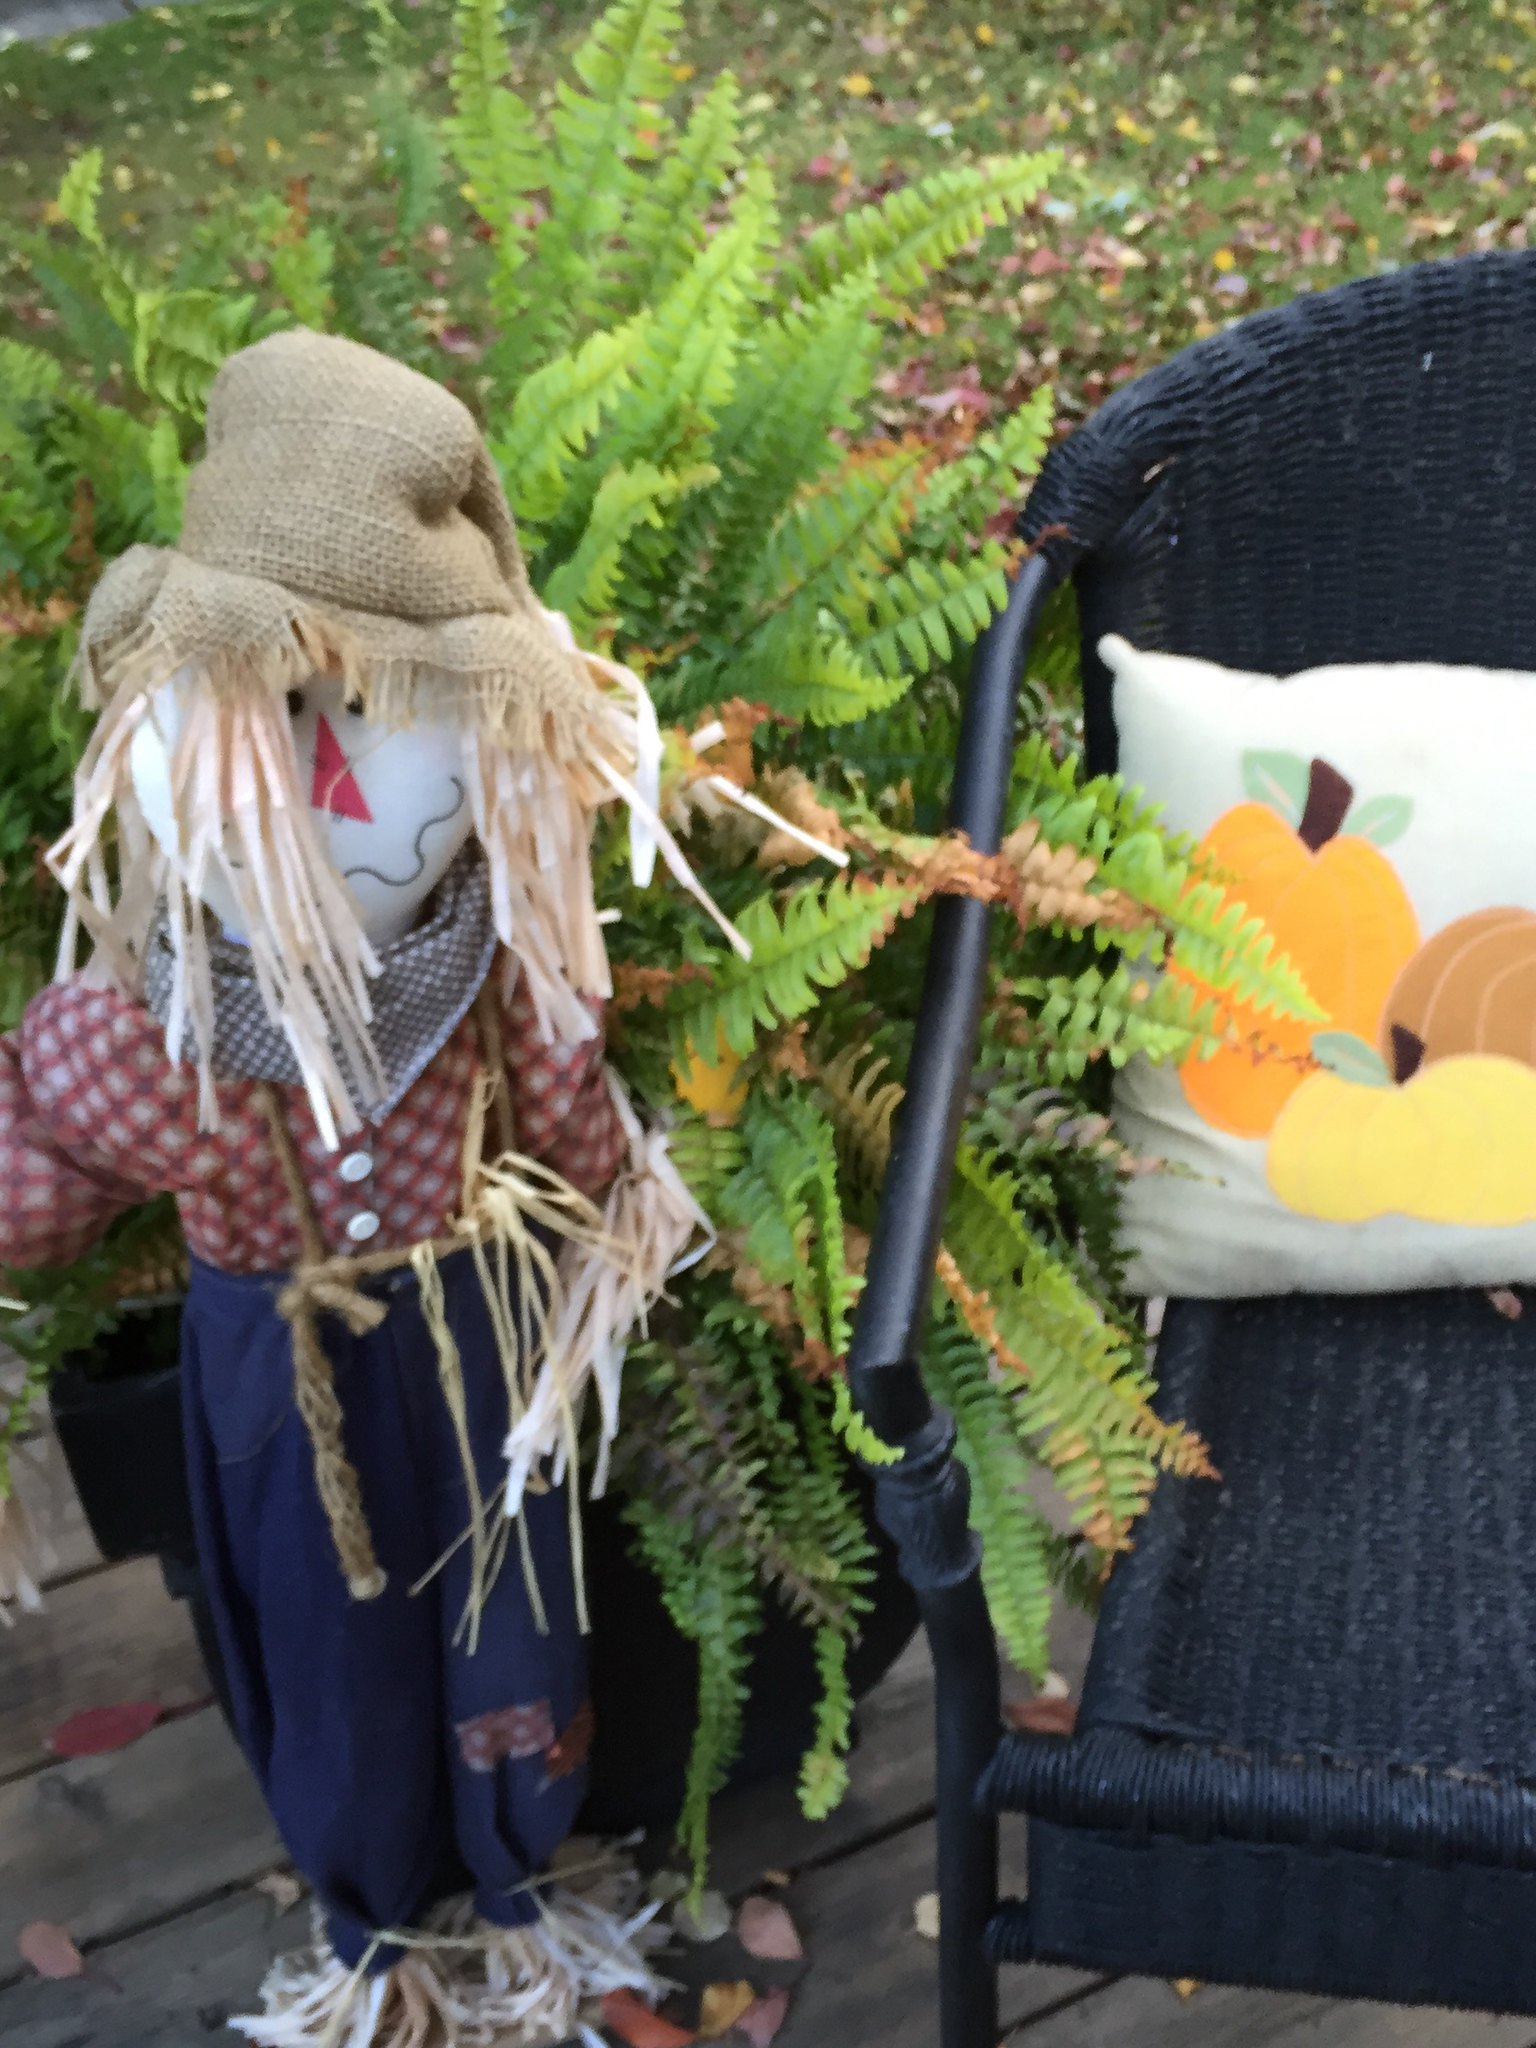 outdoor scarecrow Autumn decorations with pumpkin cushion